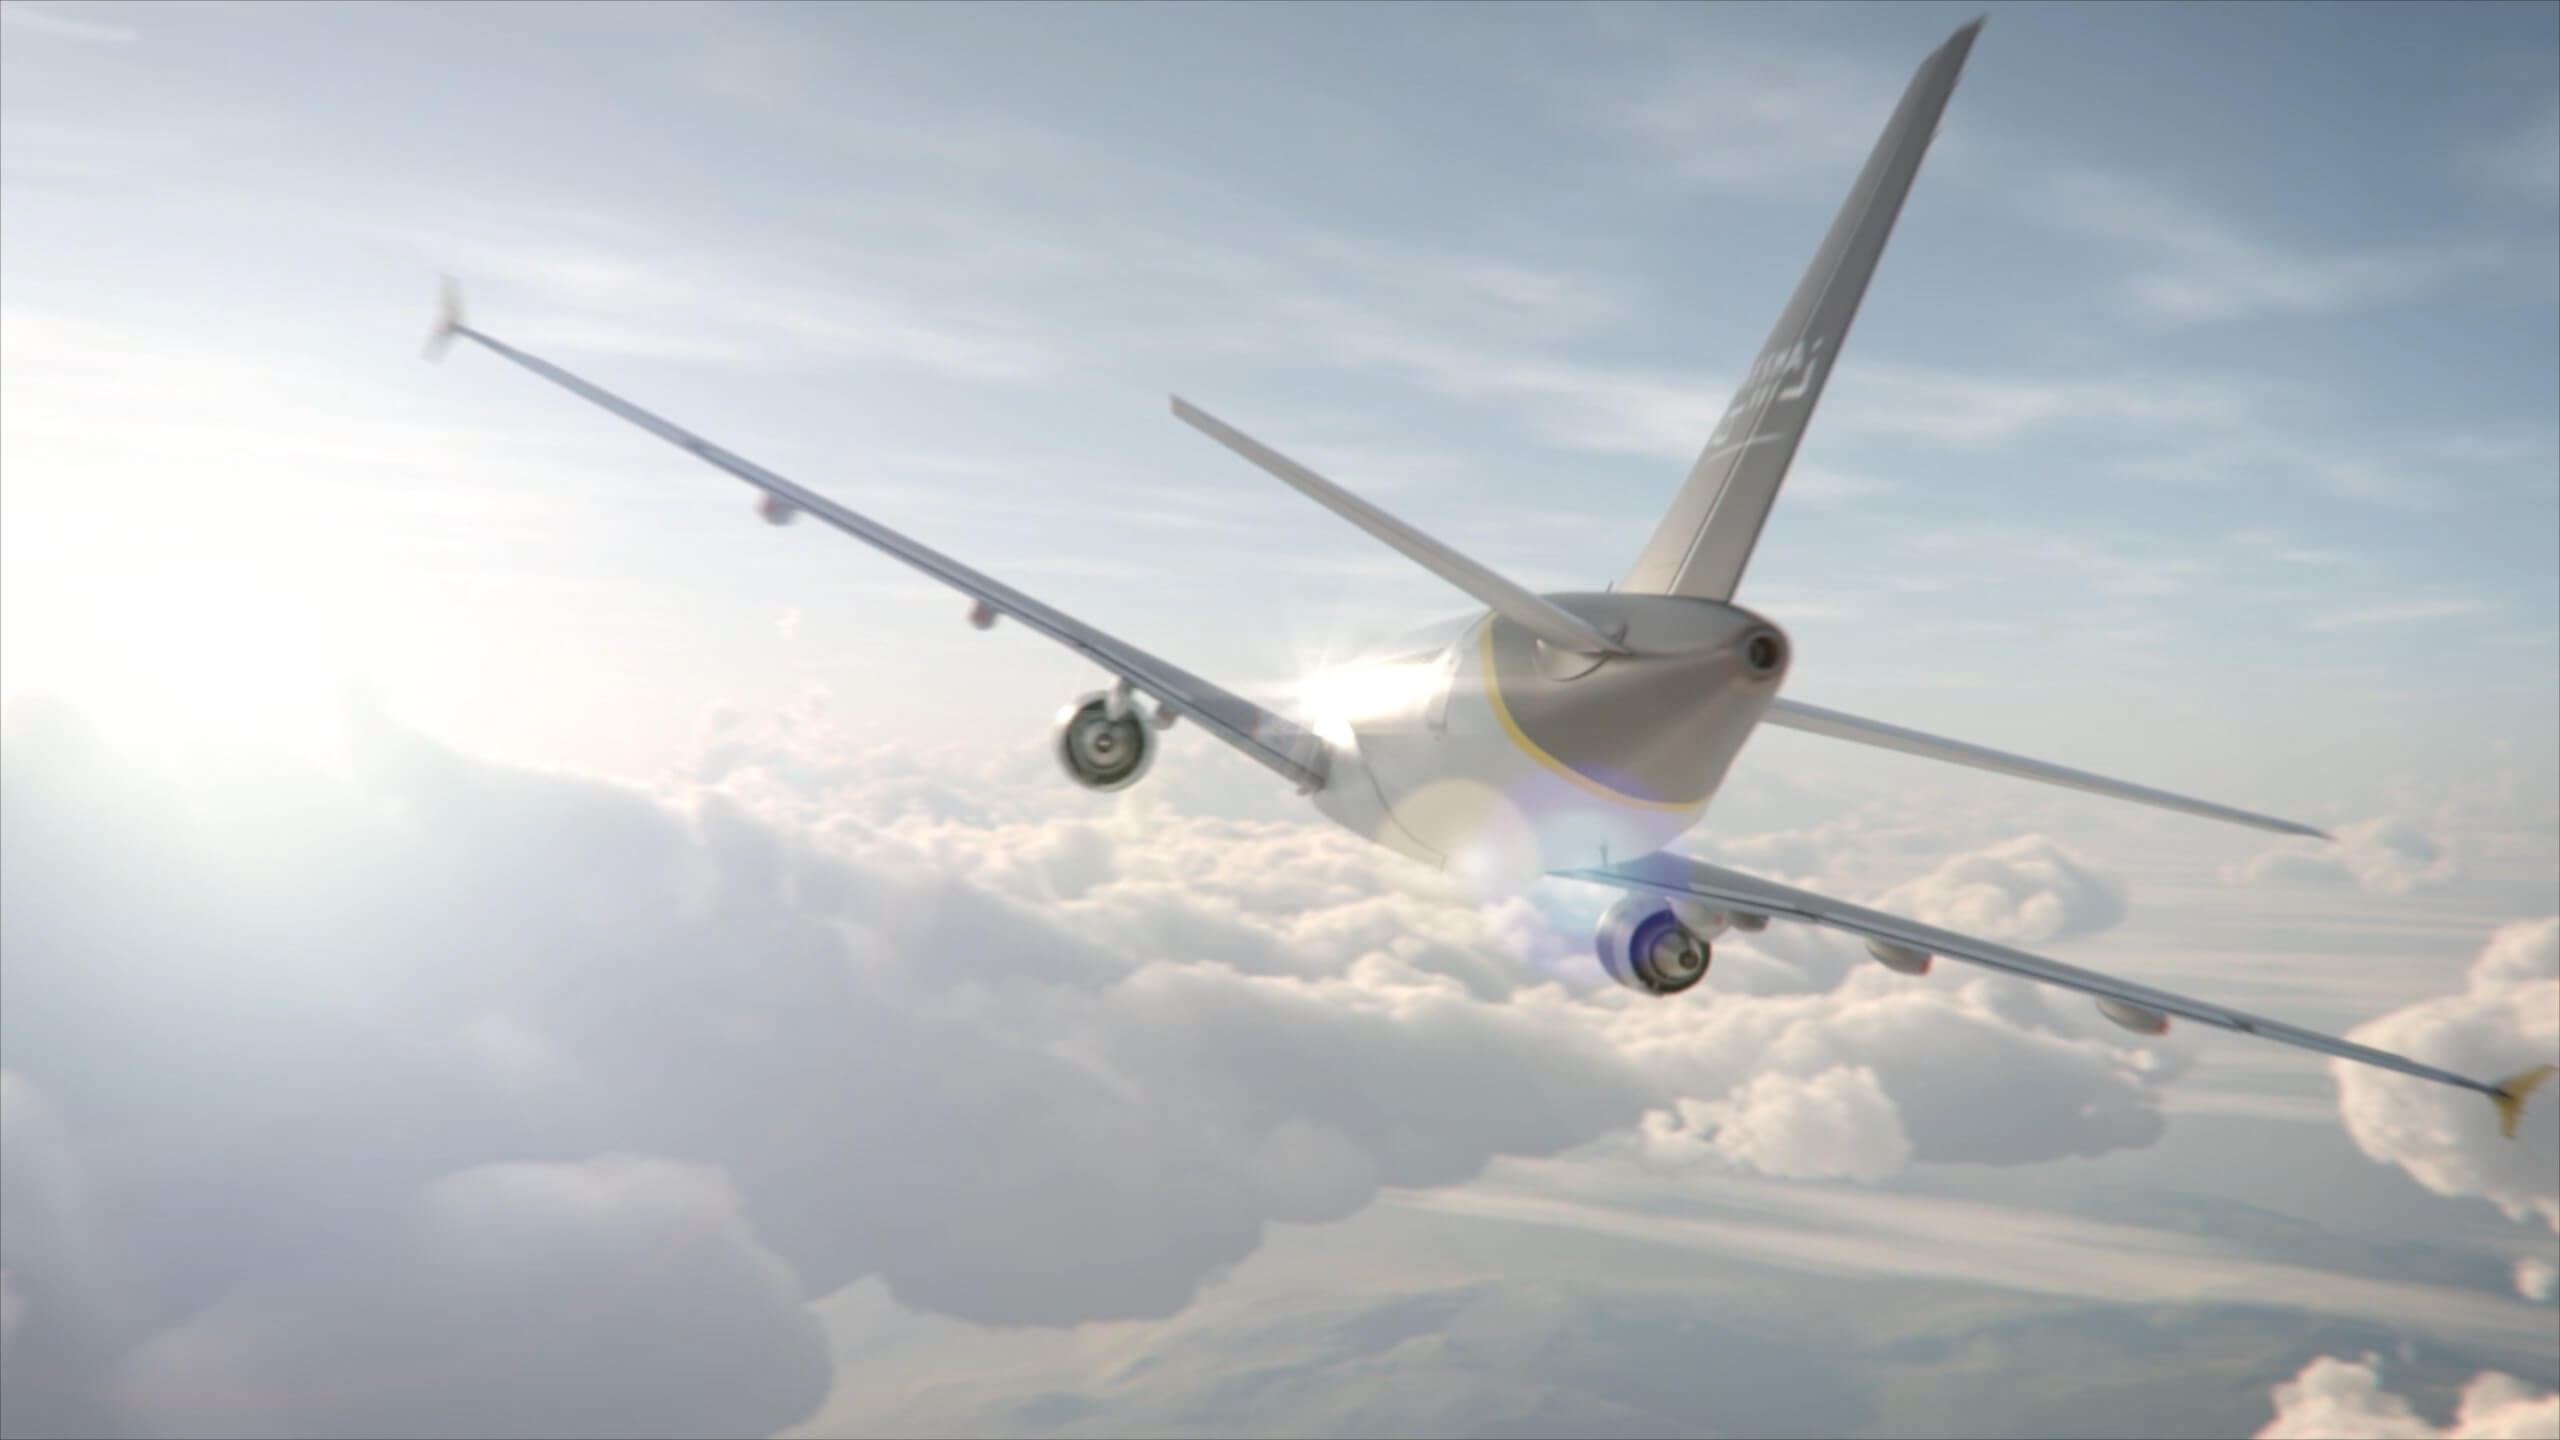 Airline Safety Instructions Video for Nesma Airlines Produced by NDIGITEC